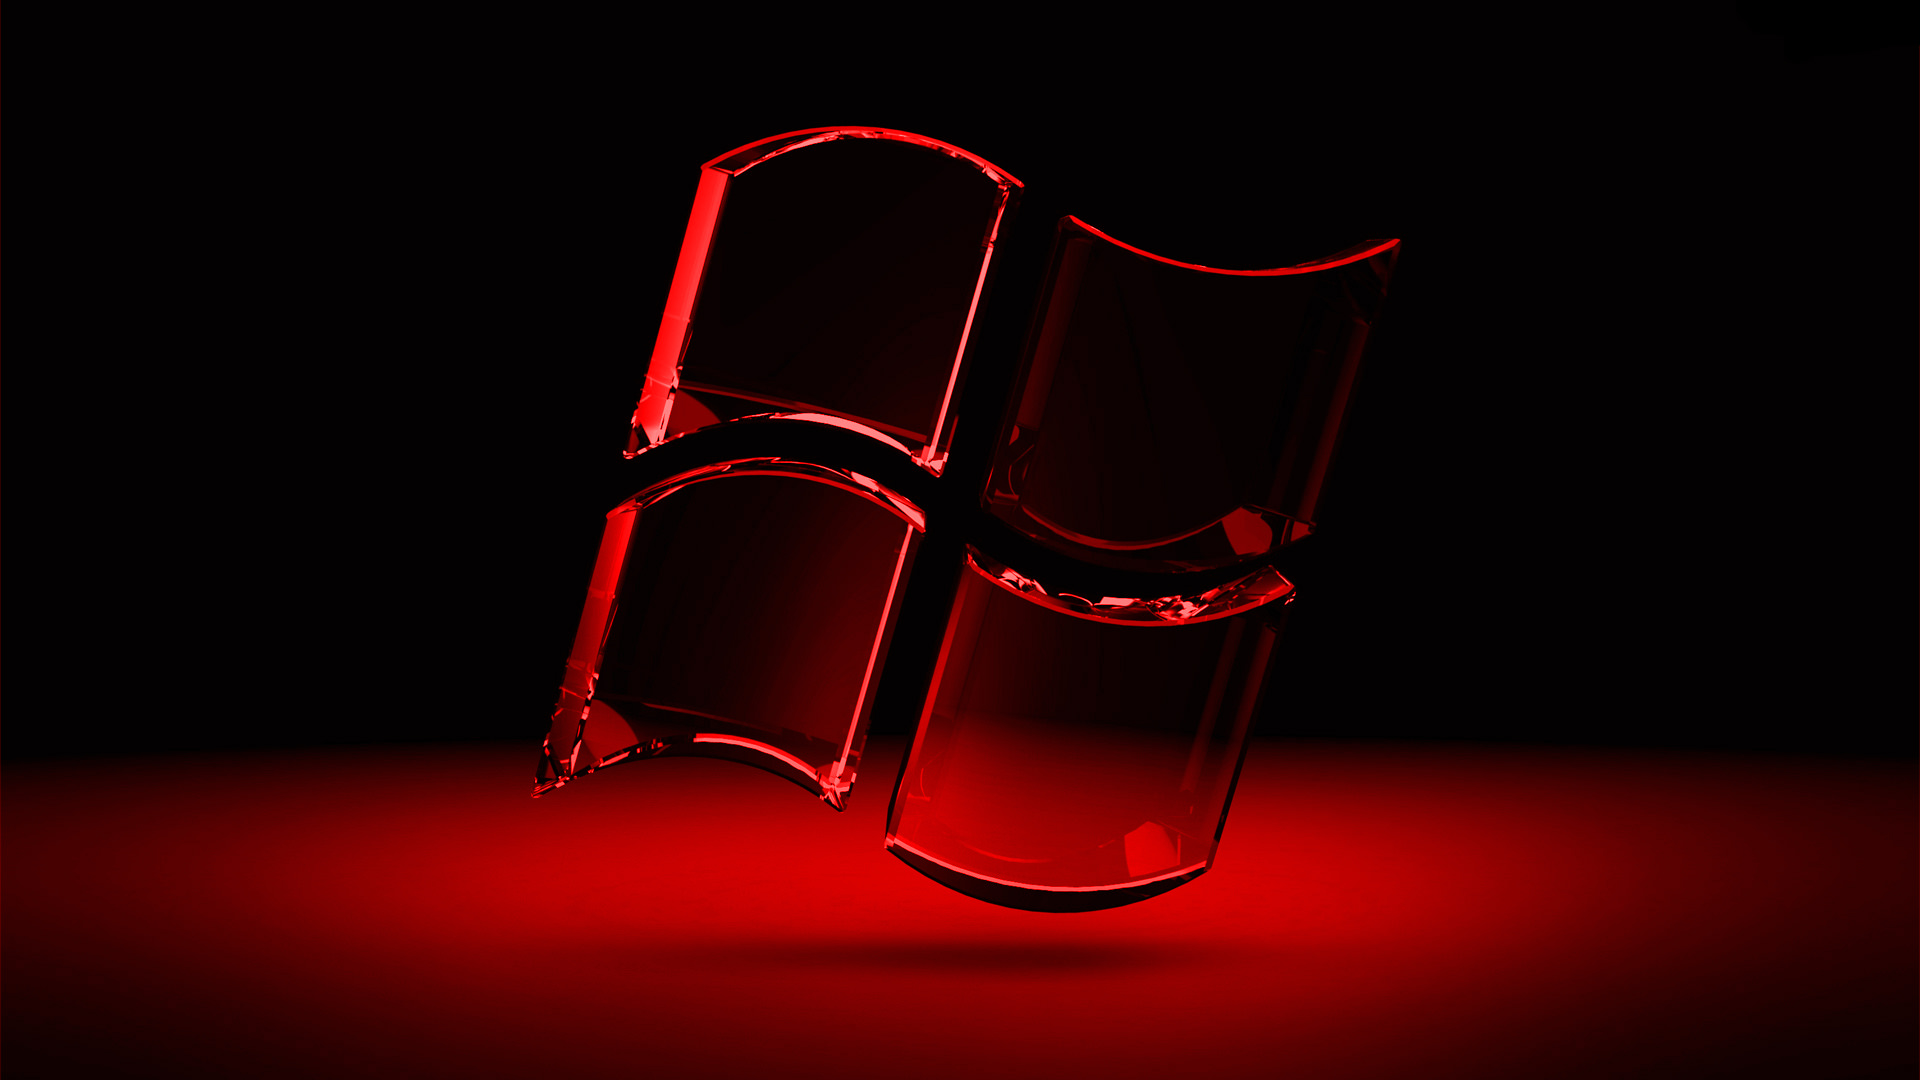 Red Windows Wallpapers Top Free Red Windows Backgrounds